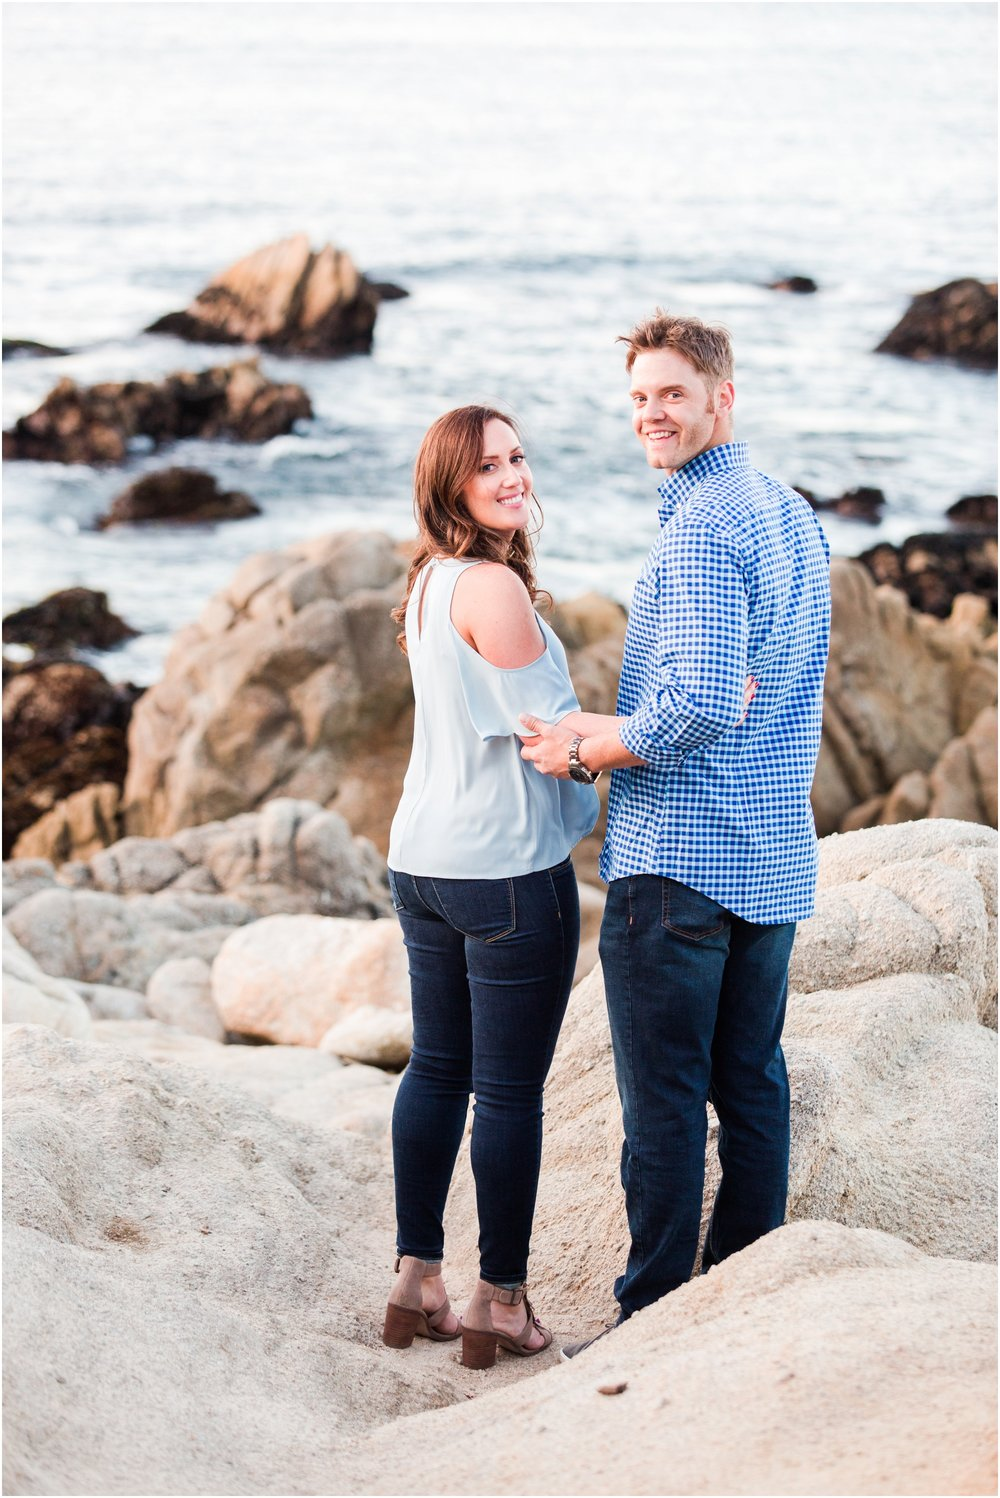 Berwick Park Monterey engagement pictures by Briana Calderon Photography_2405.jpg